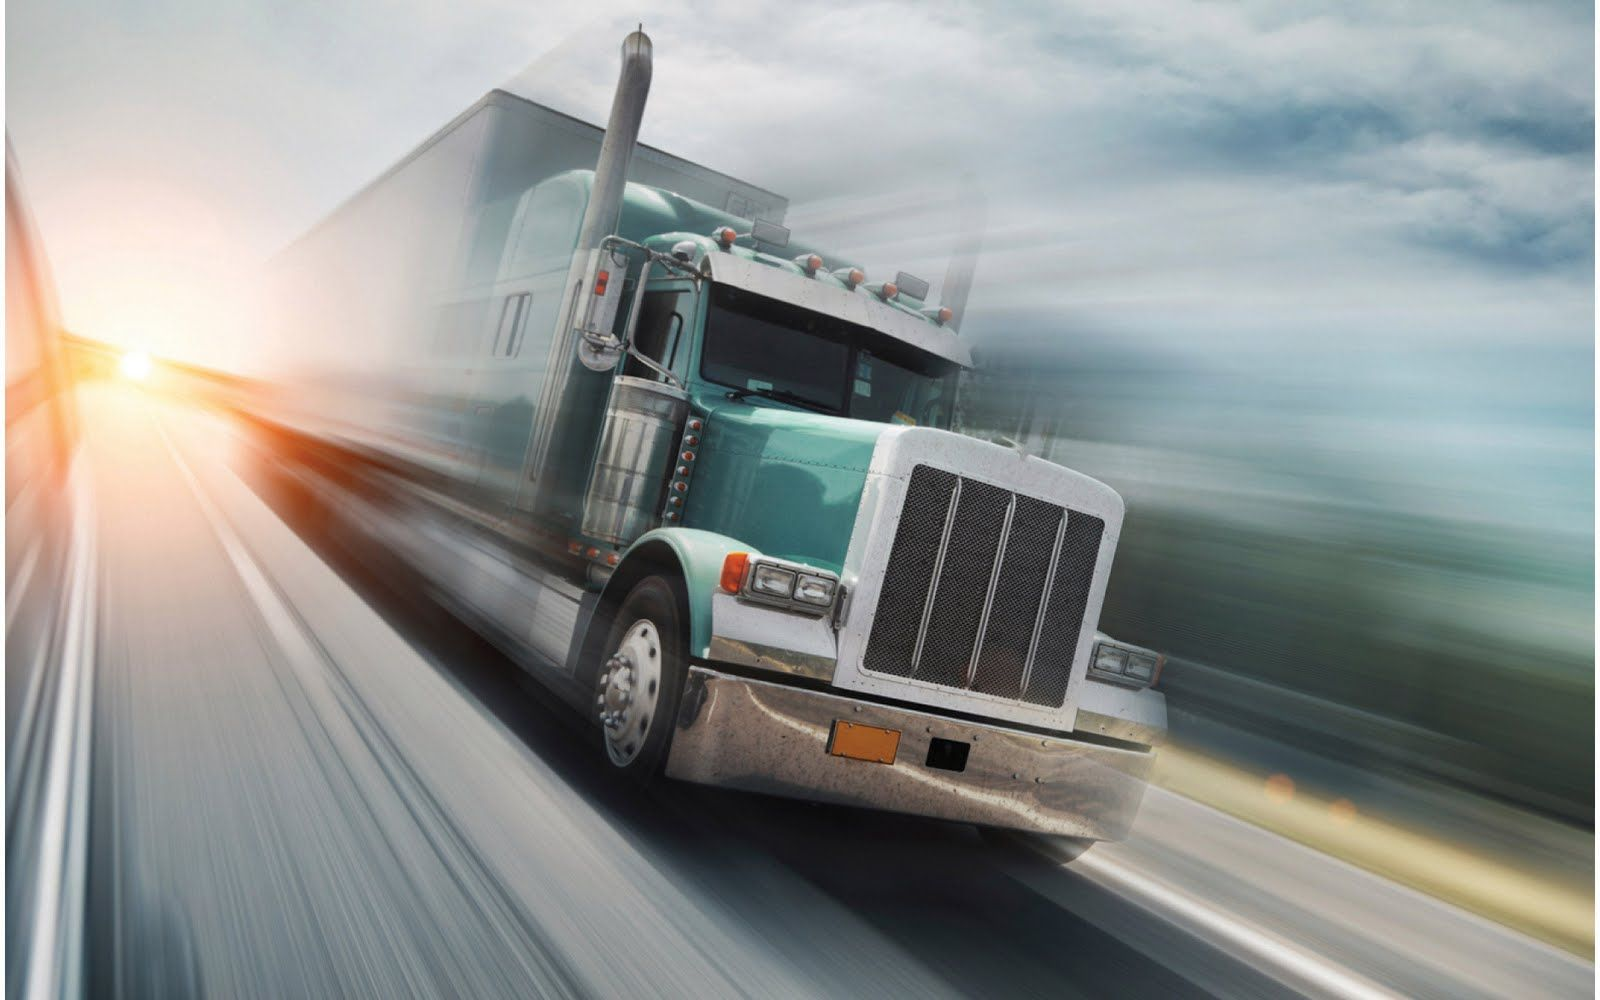 Truck Wallpaper Hd Wallpapers High Definition 100 Hd Quality